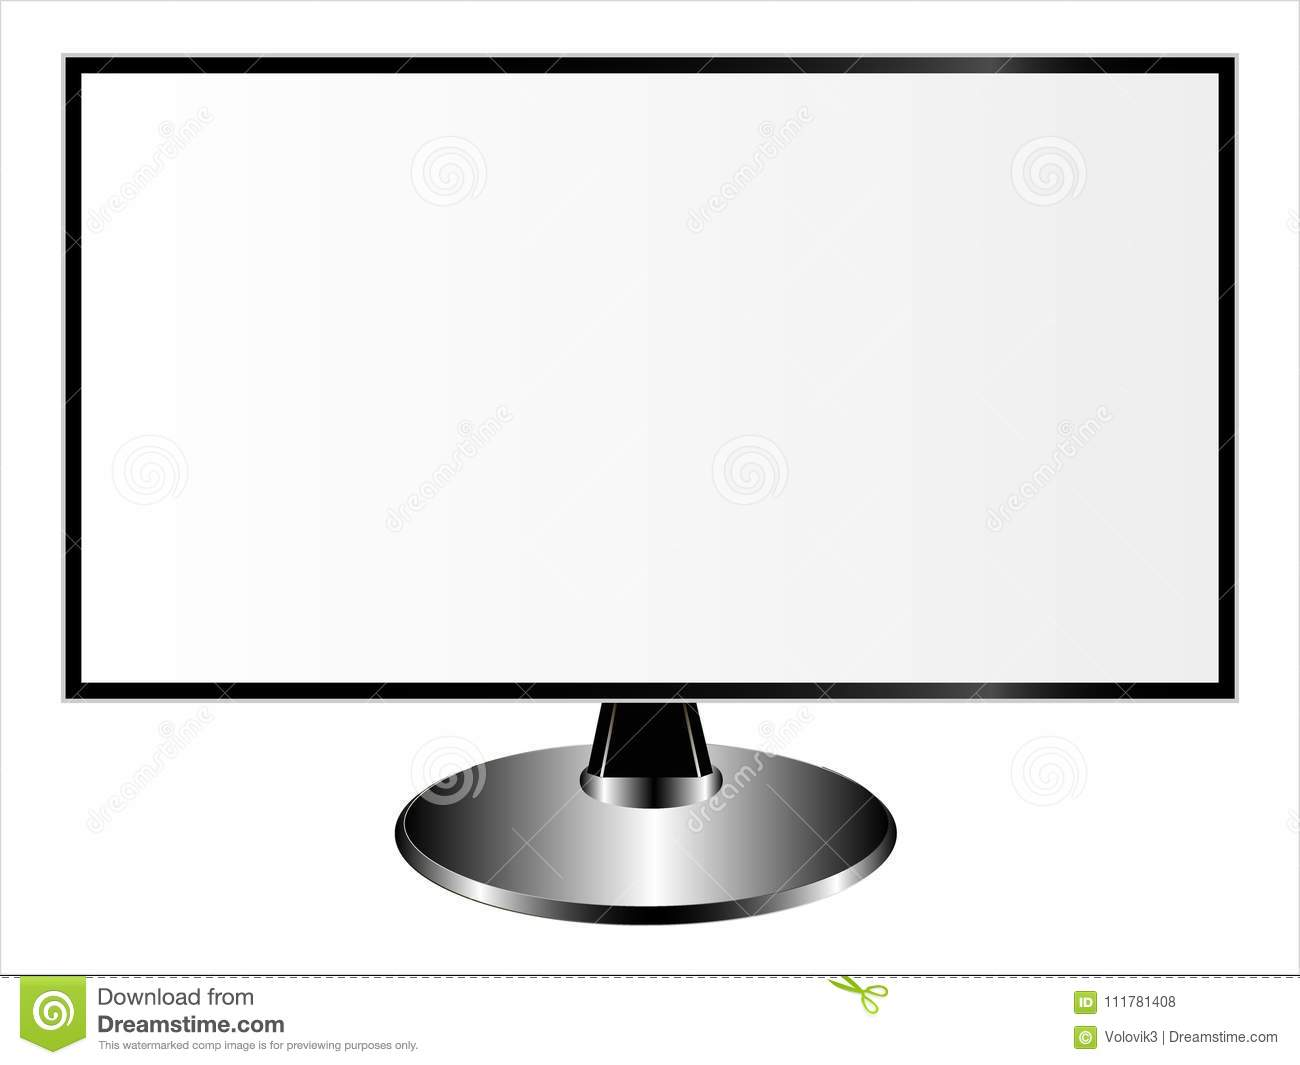 Mockups of a monitor, a tablet computer and a smartphone on a white background.